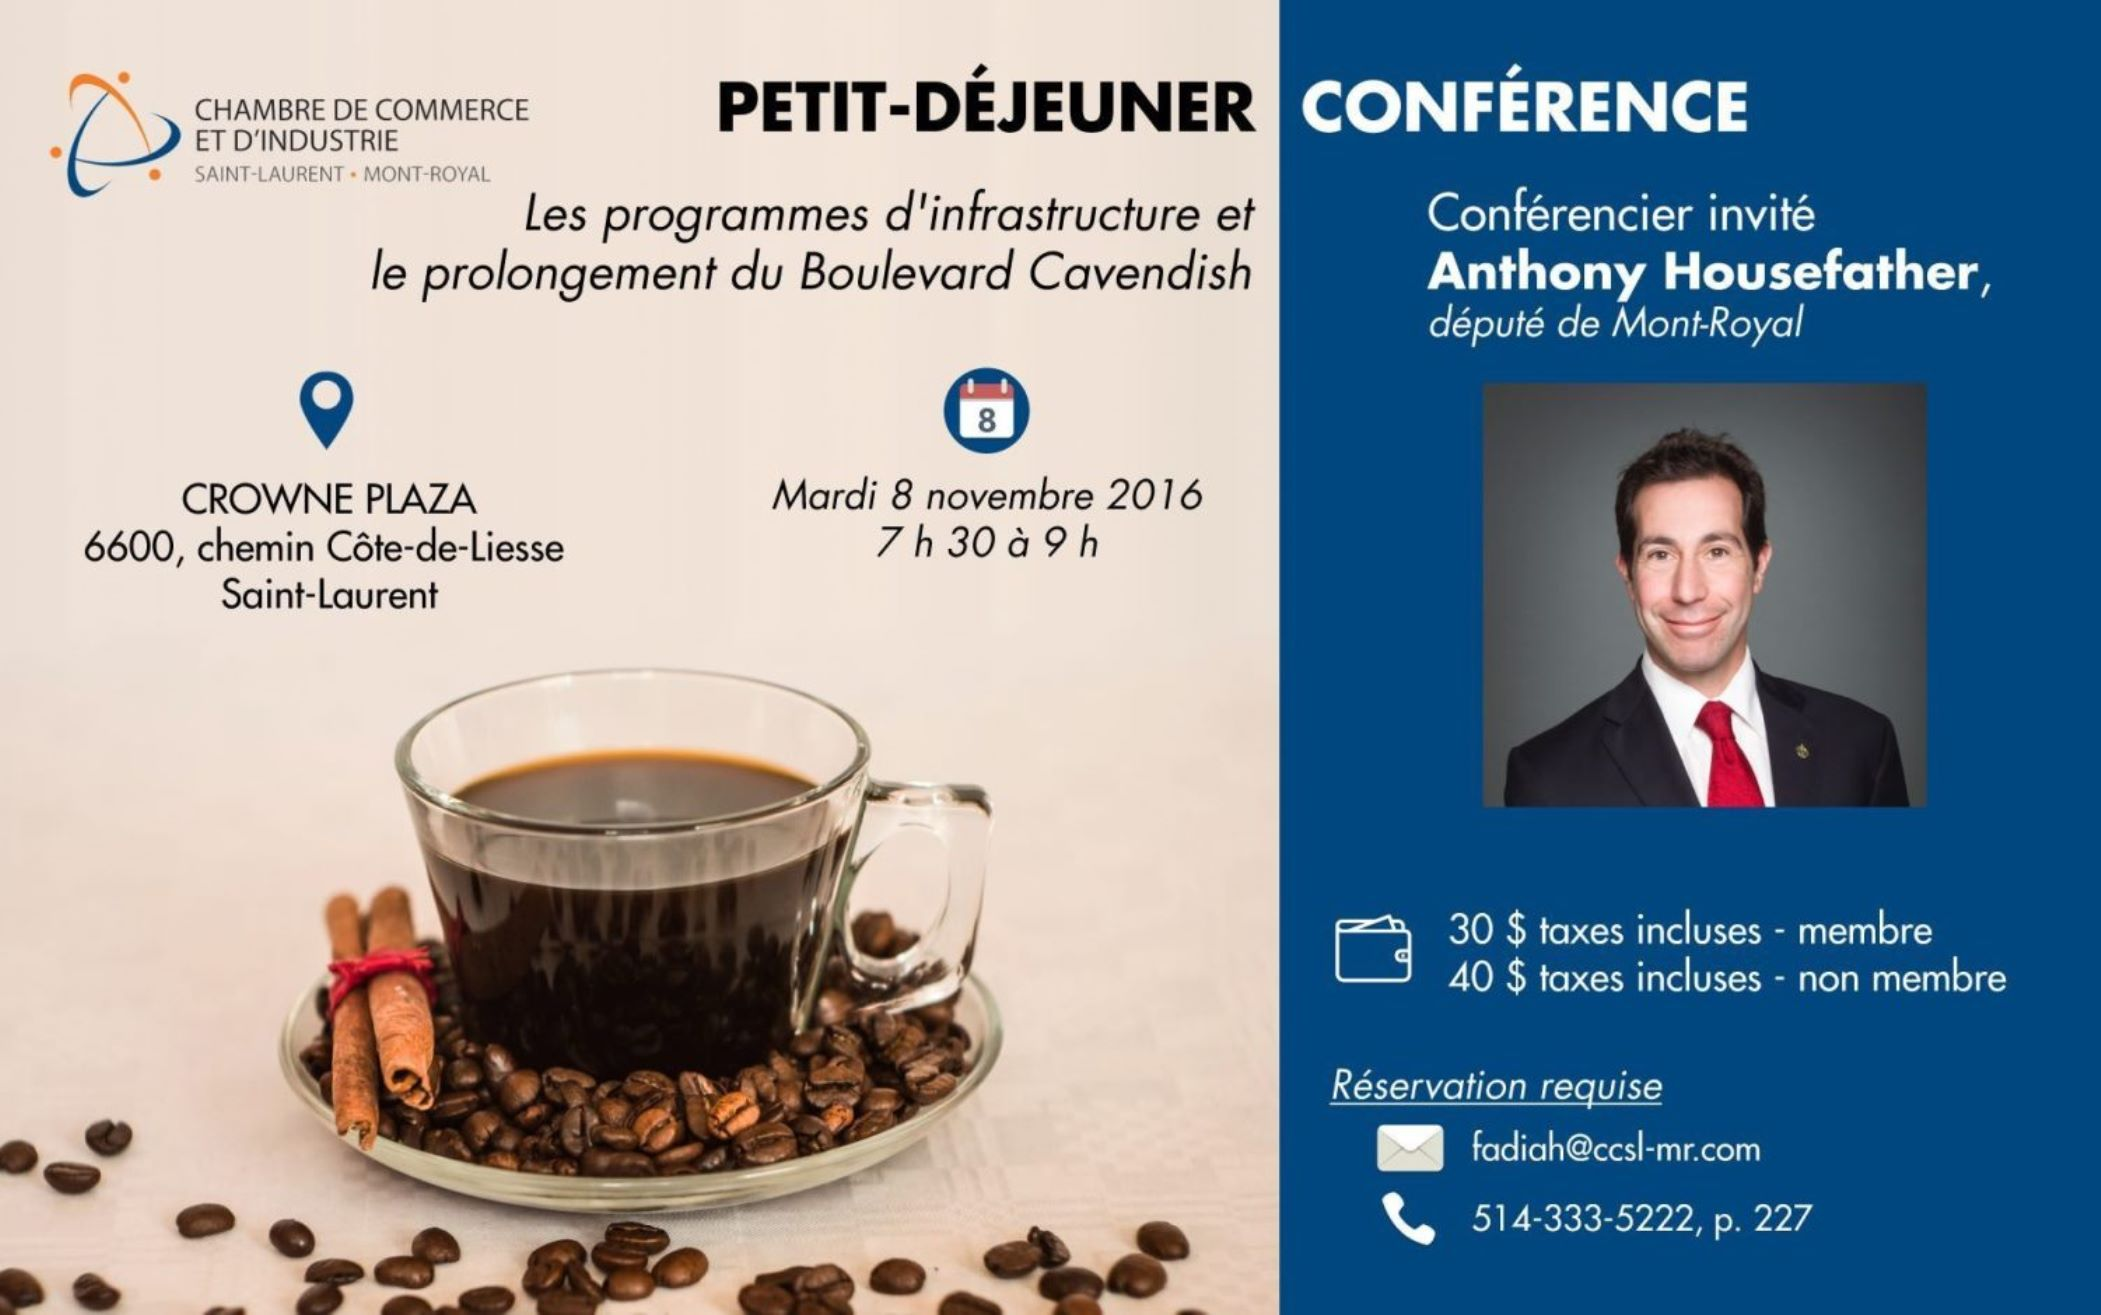 affiche_conference_housefather-test